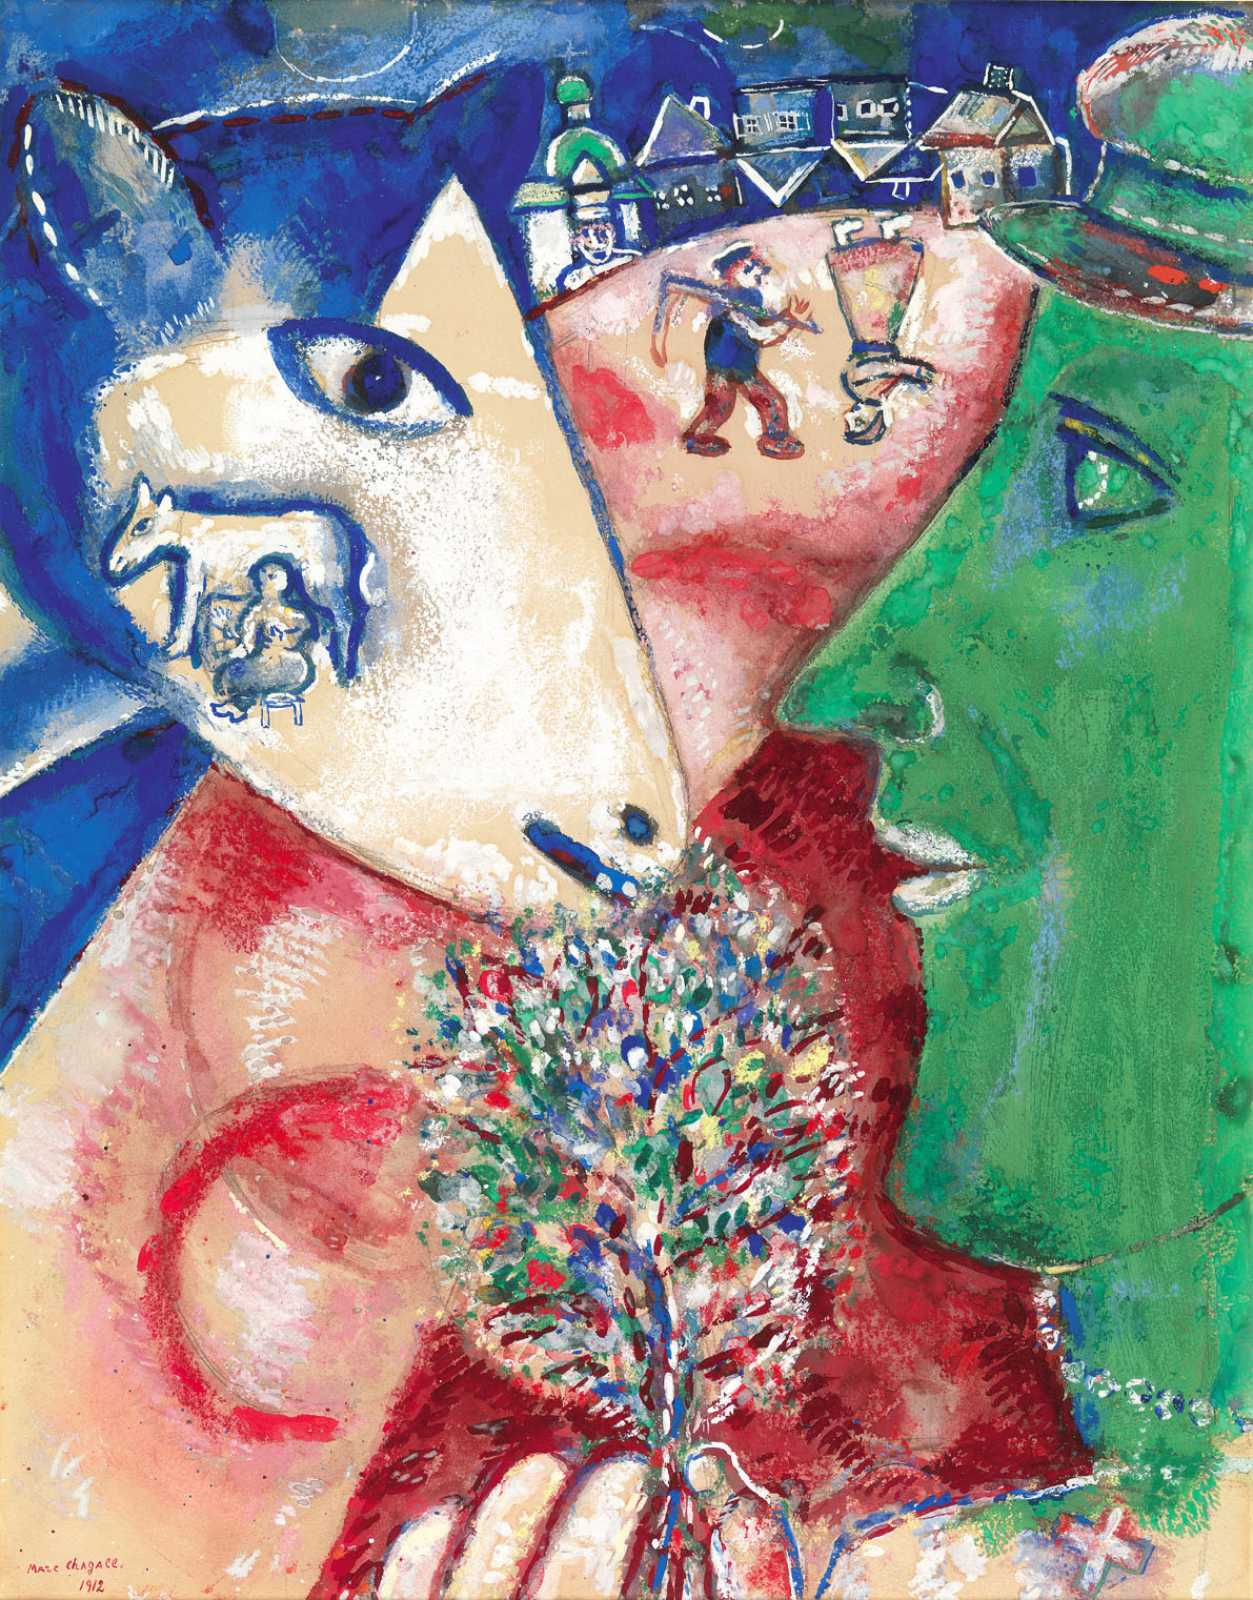 Exhibition « CHAGALL » – Royal Museums of Fine Arts of Belgium